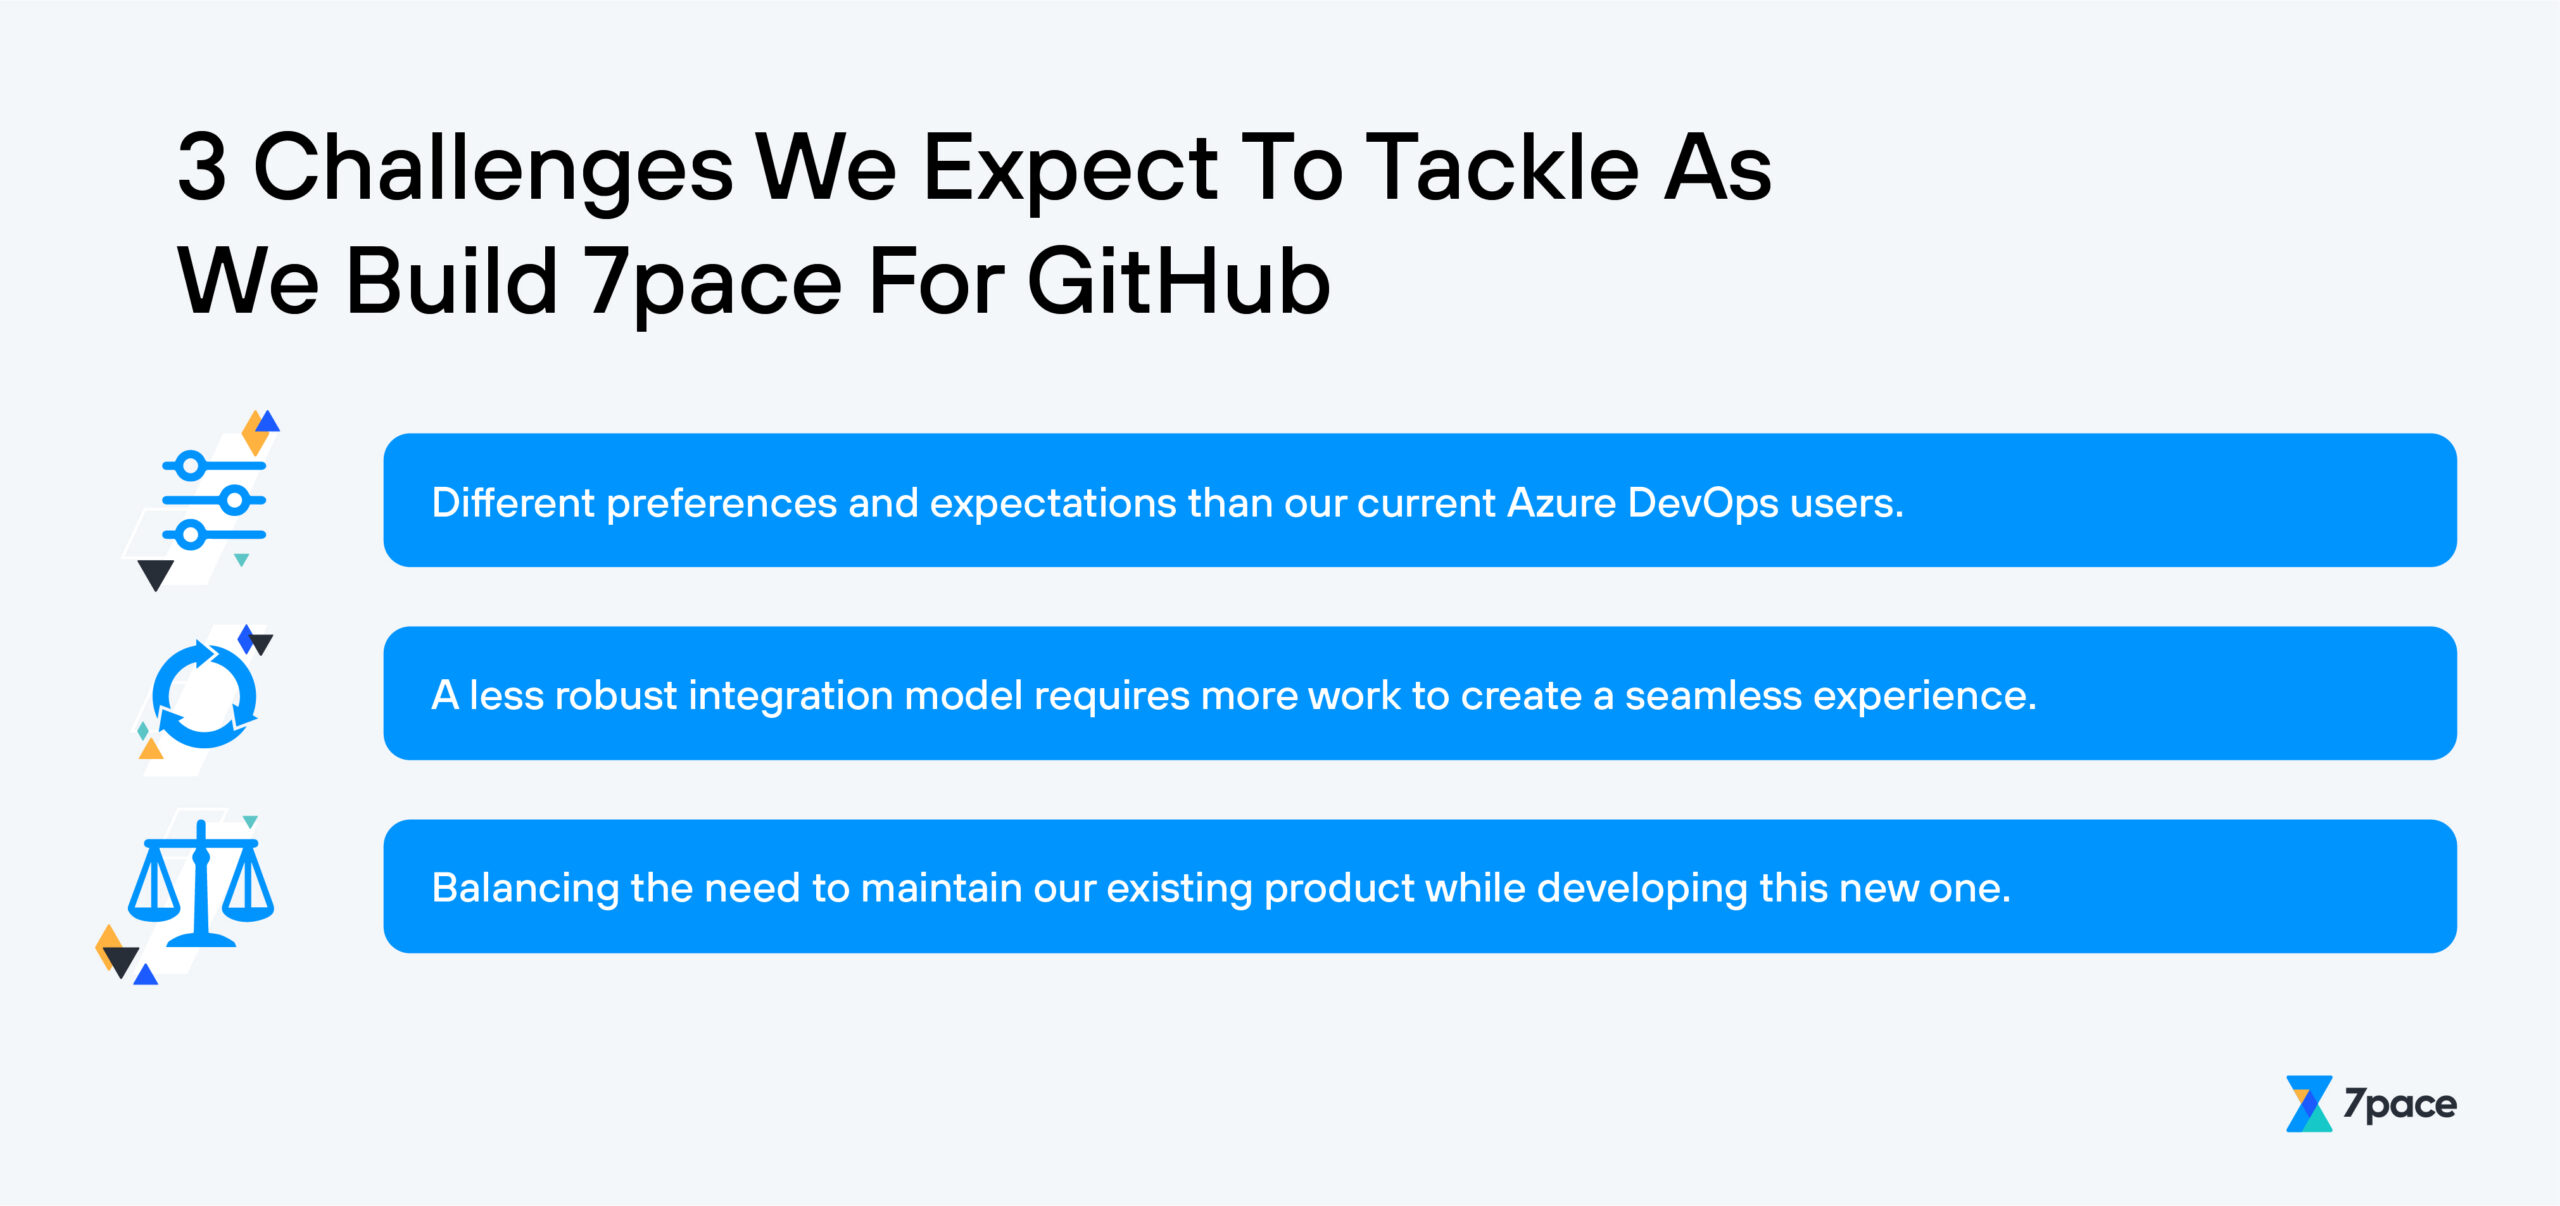 Challenges We Expect to Encounter As We Build 7pace for GitHub